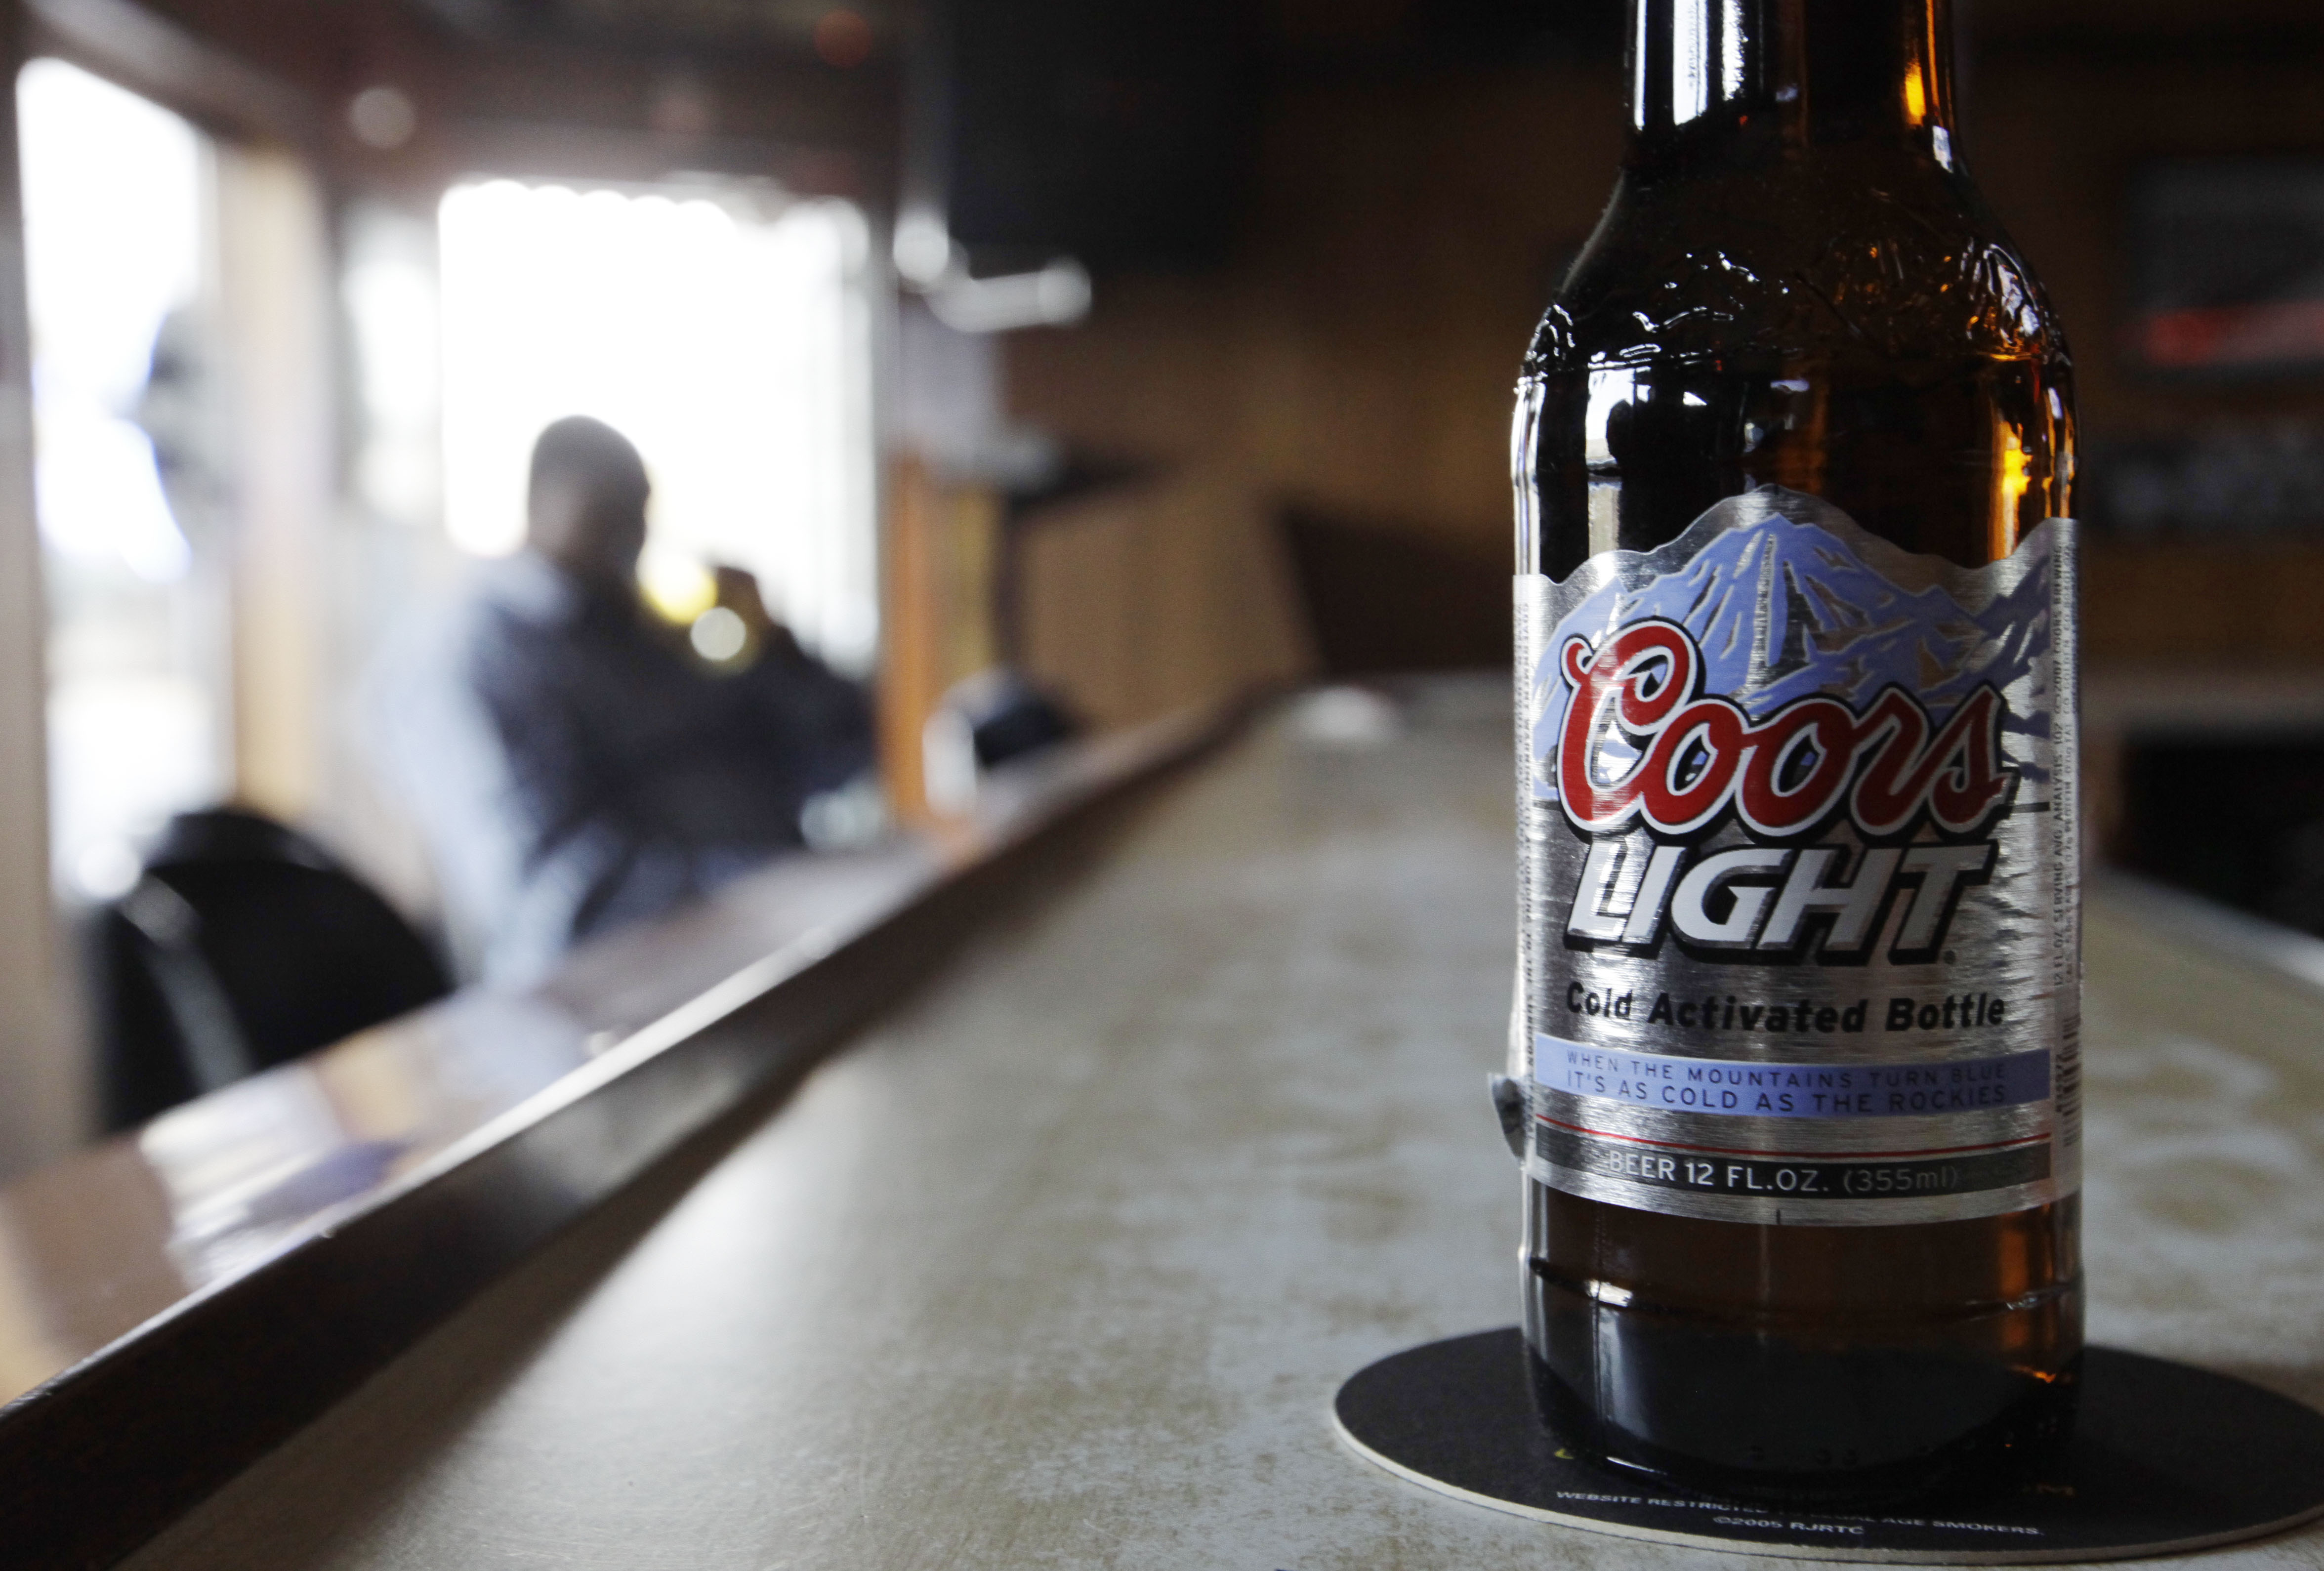 That's a lot of beer: MillerCoors sues former employee for $13 4